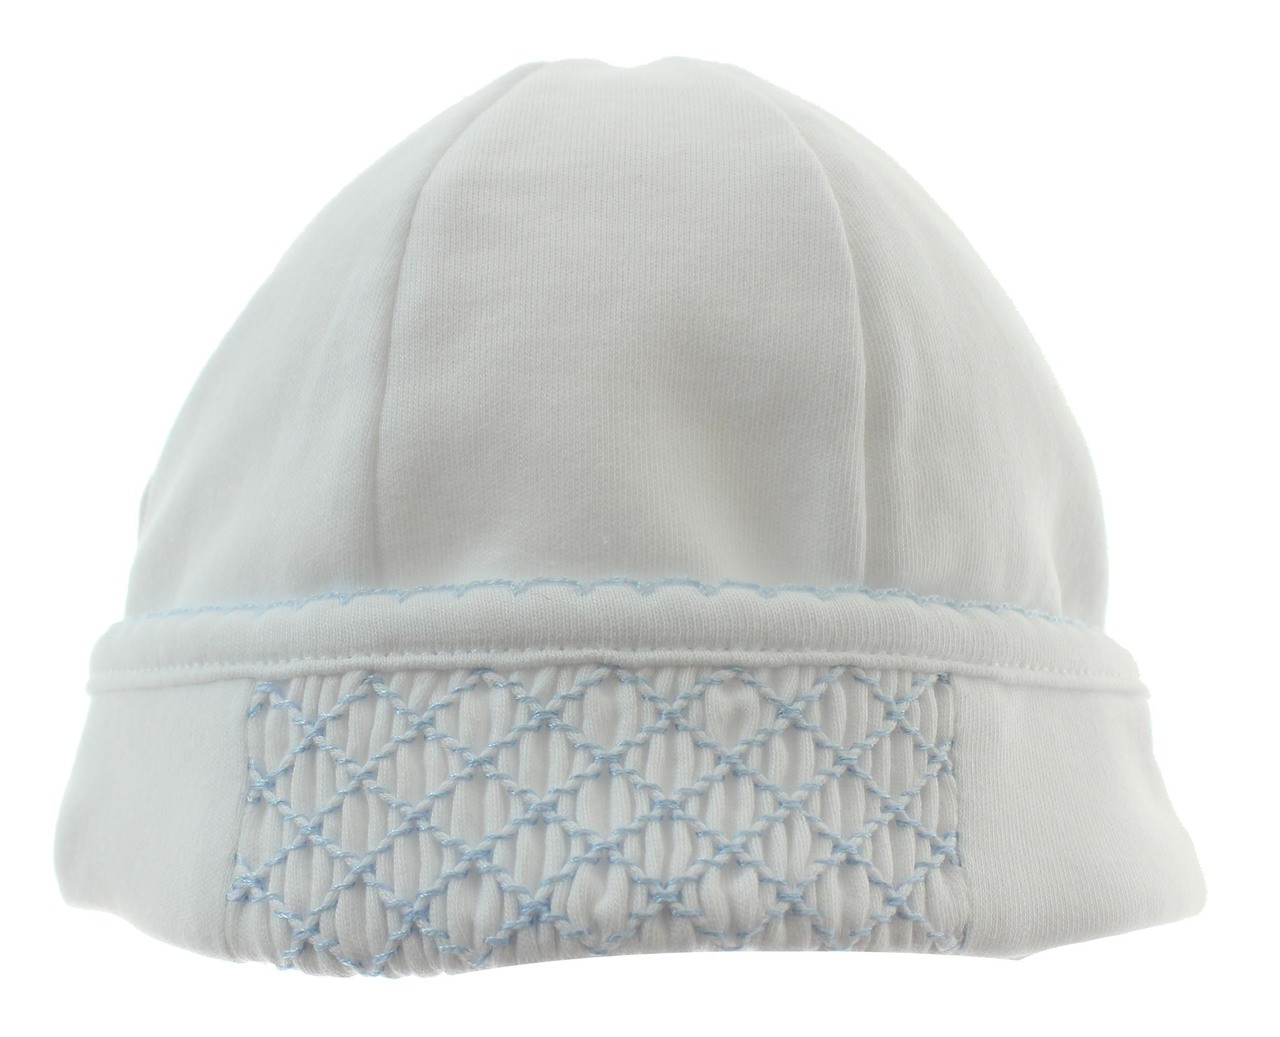 42082b431c4 Magnolia Baby boys white and blue smocked beanie hat. Click to enlarge